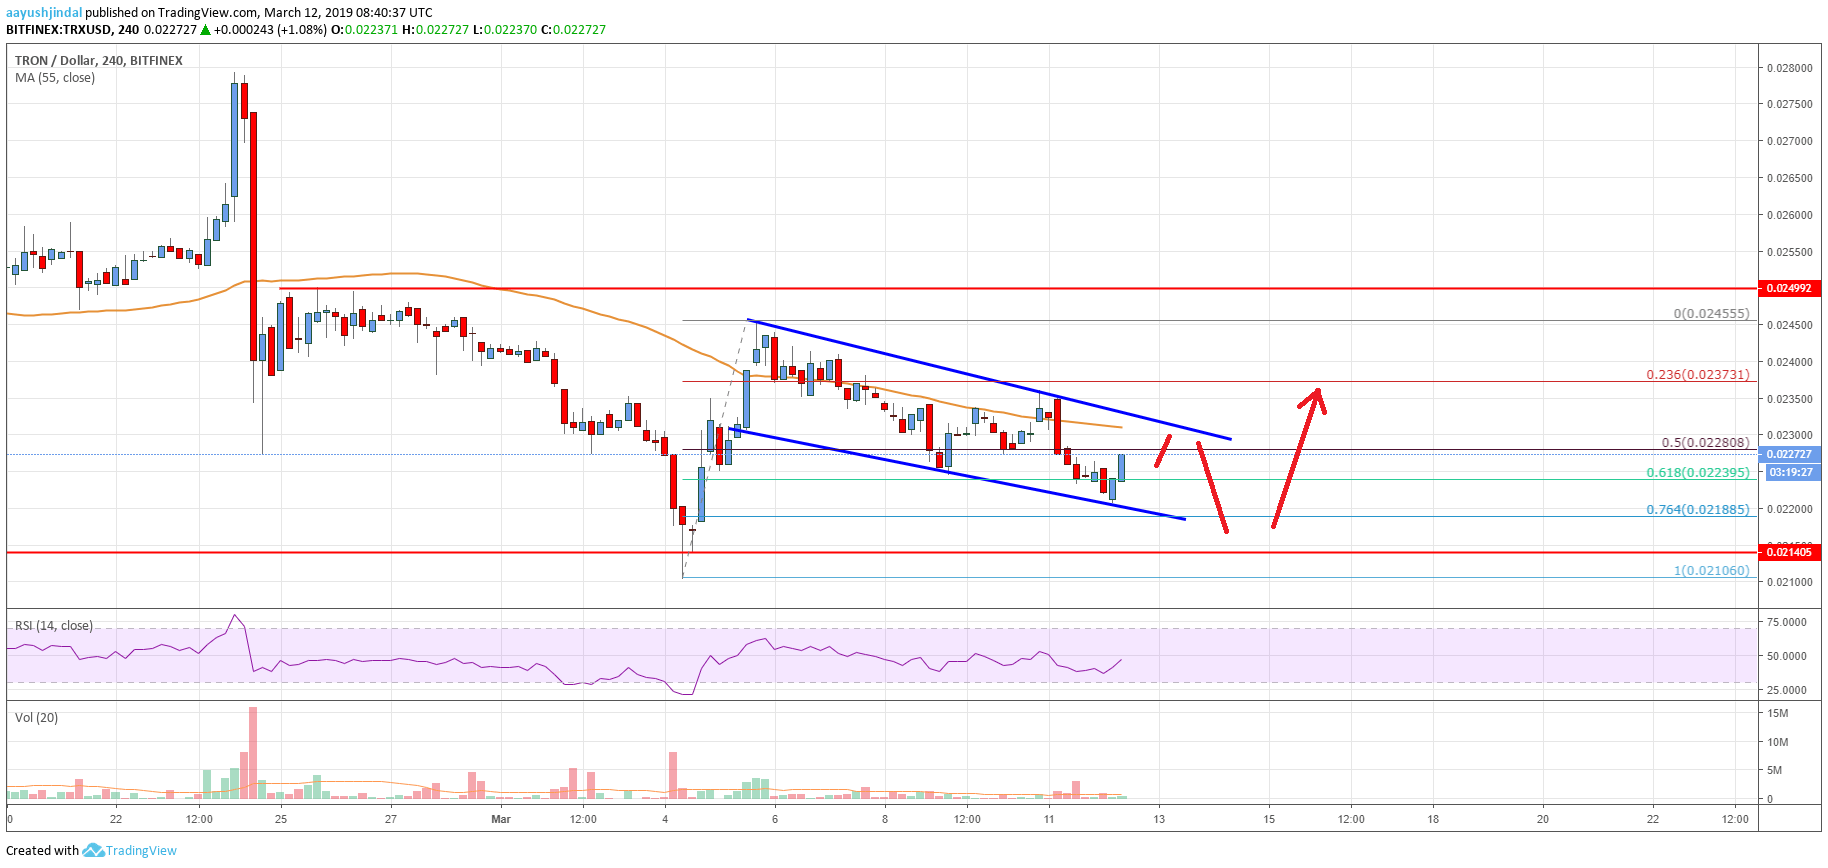 Tron (TRX) Price Could Tumble Before Fresh Rise